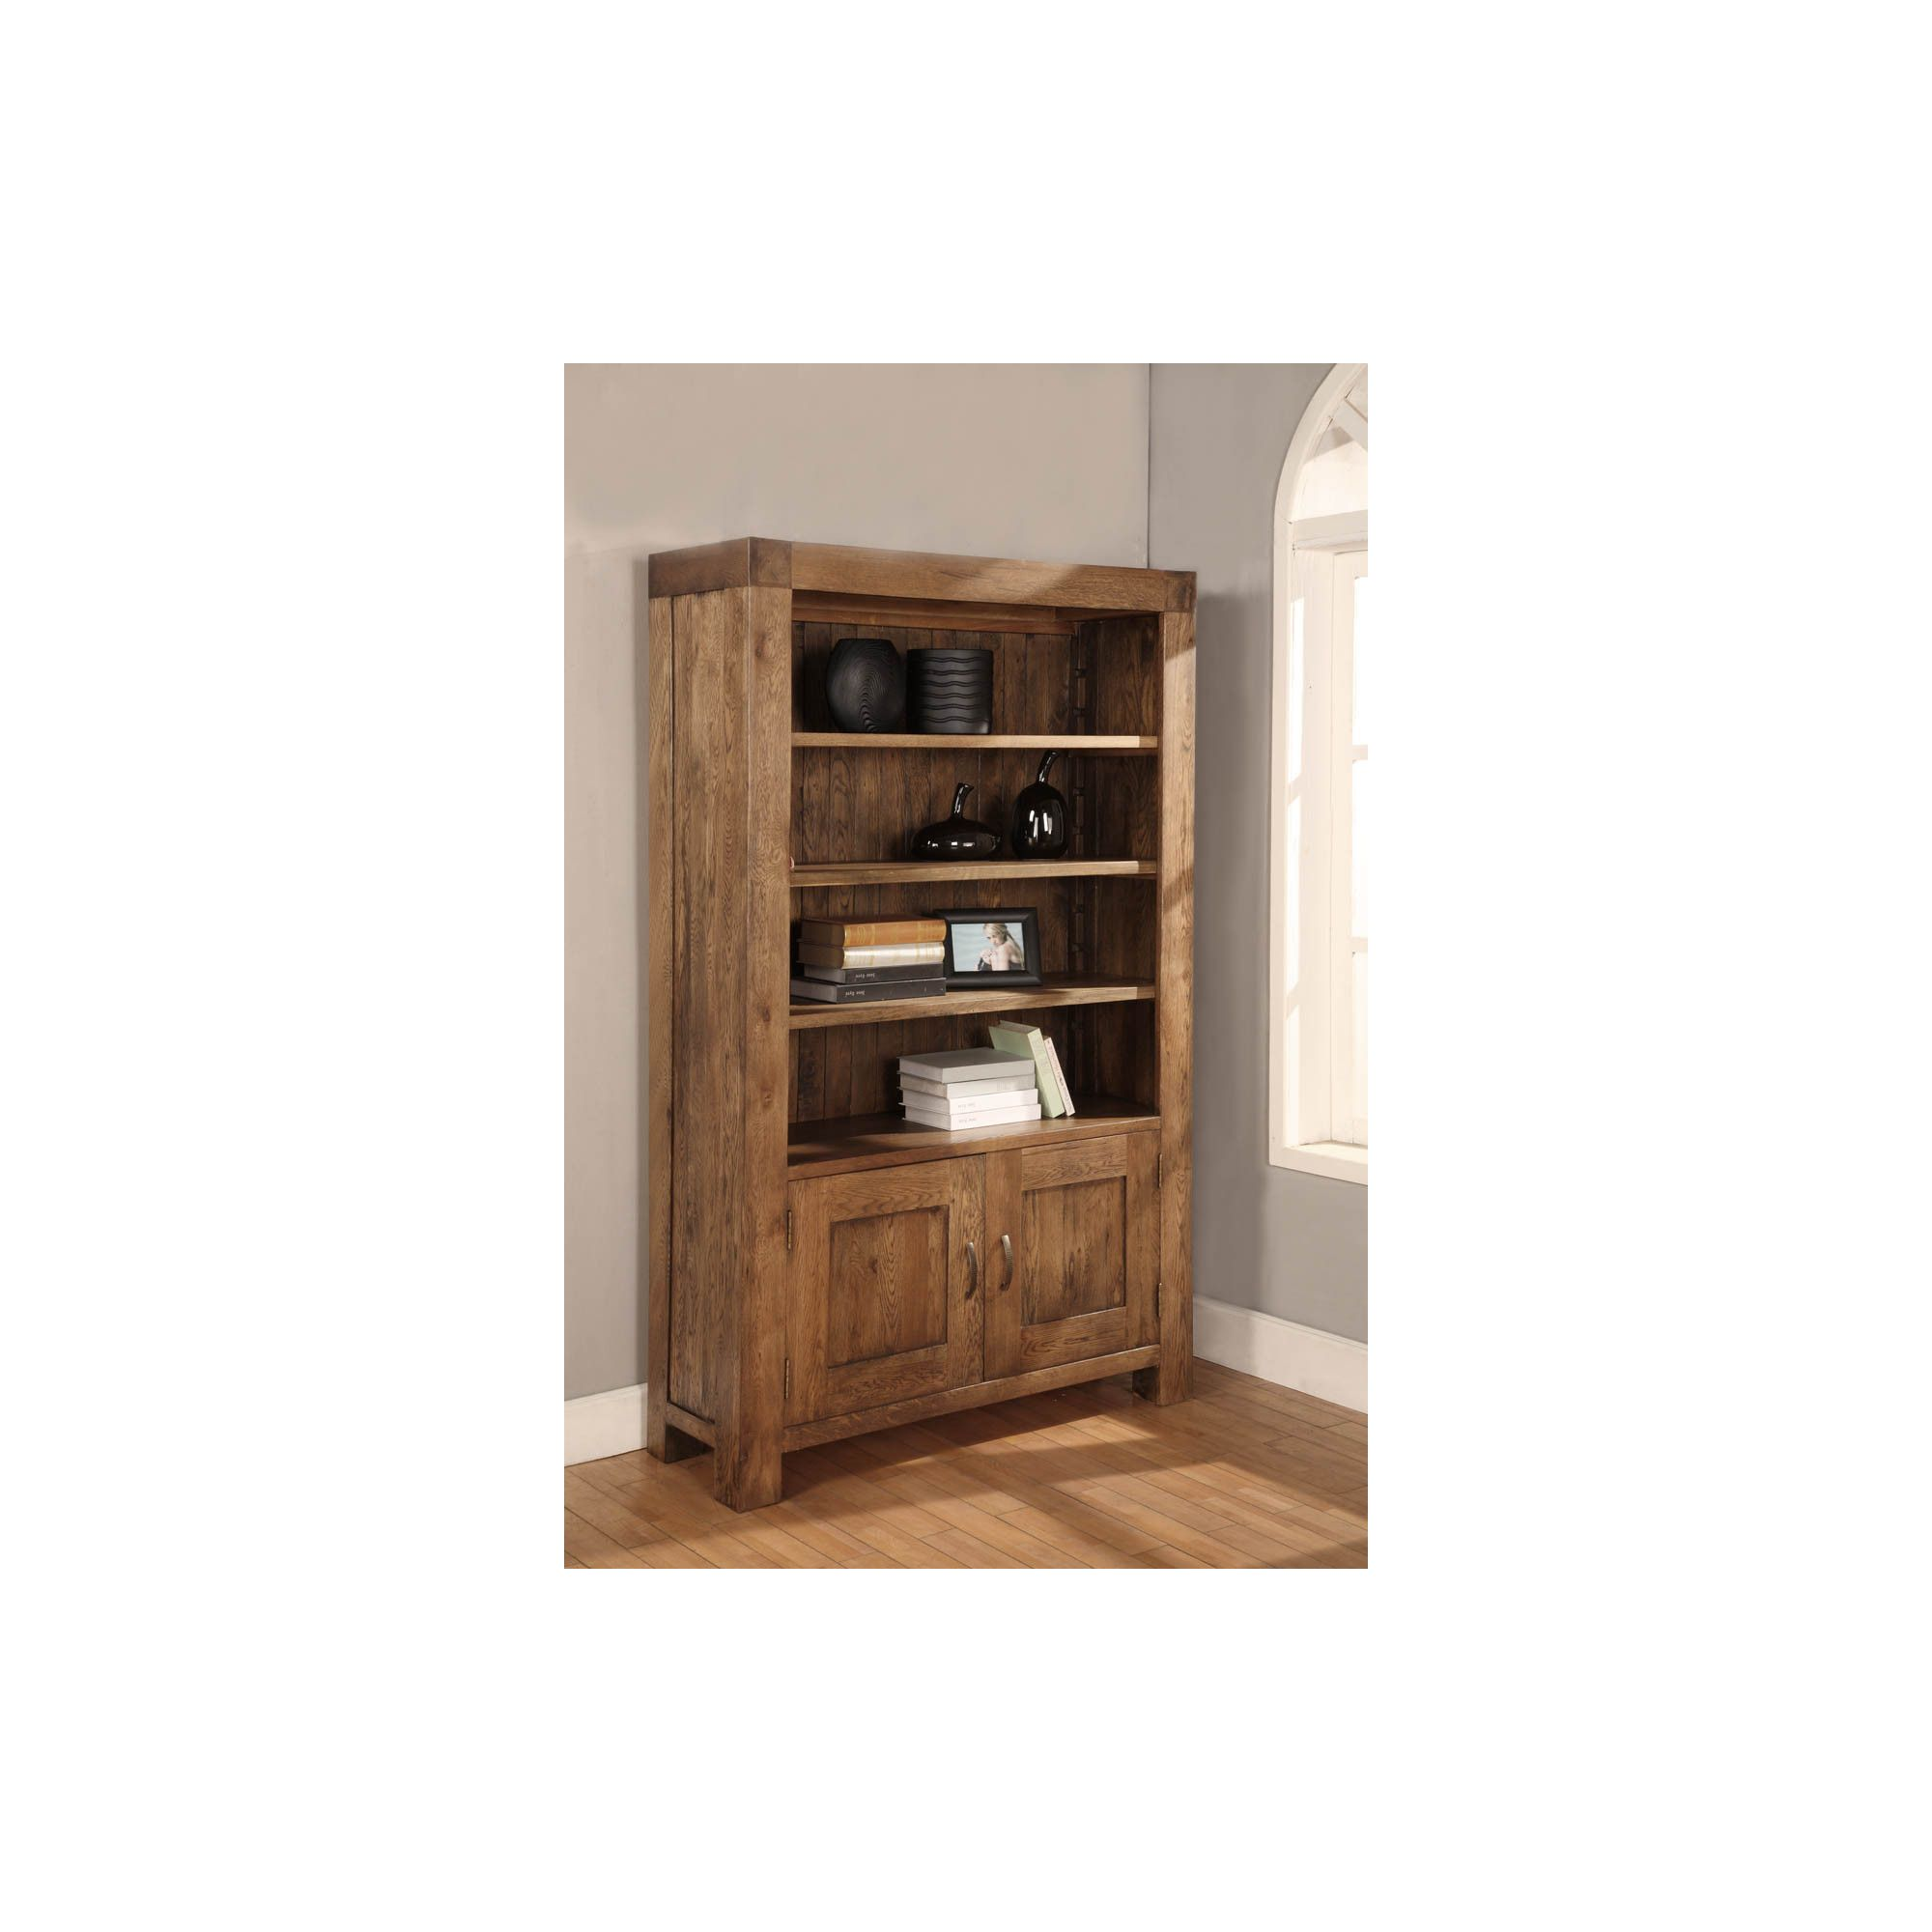 Hawkshead Santana 2 Door Bookcase with 2 Adjustable Shelves in Rich Patina at Tesco Direct